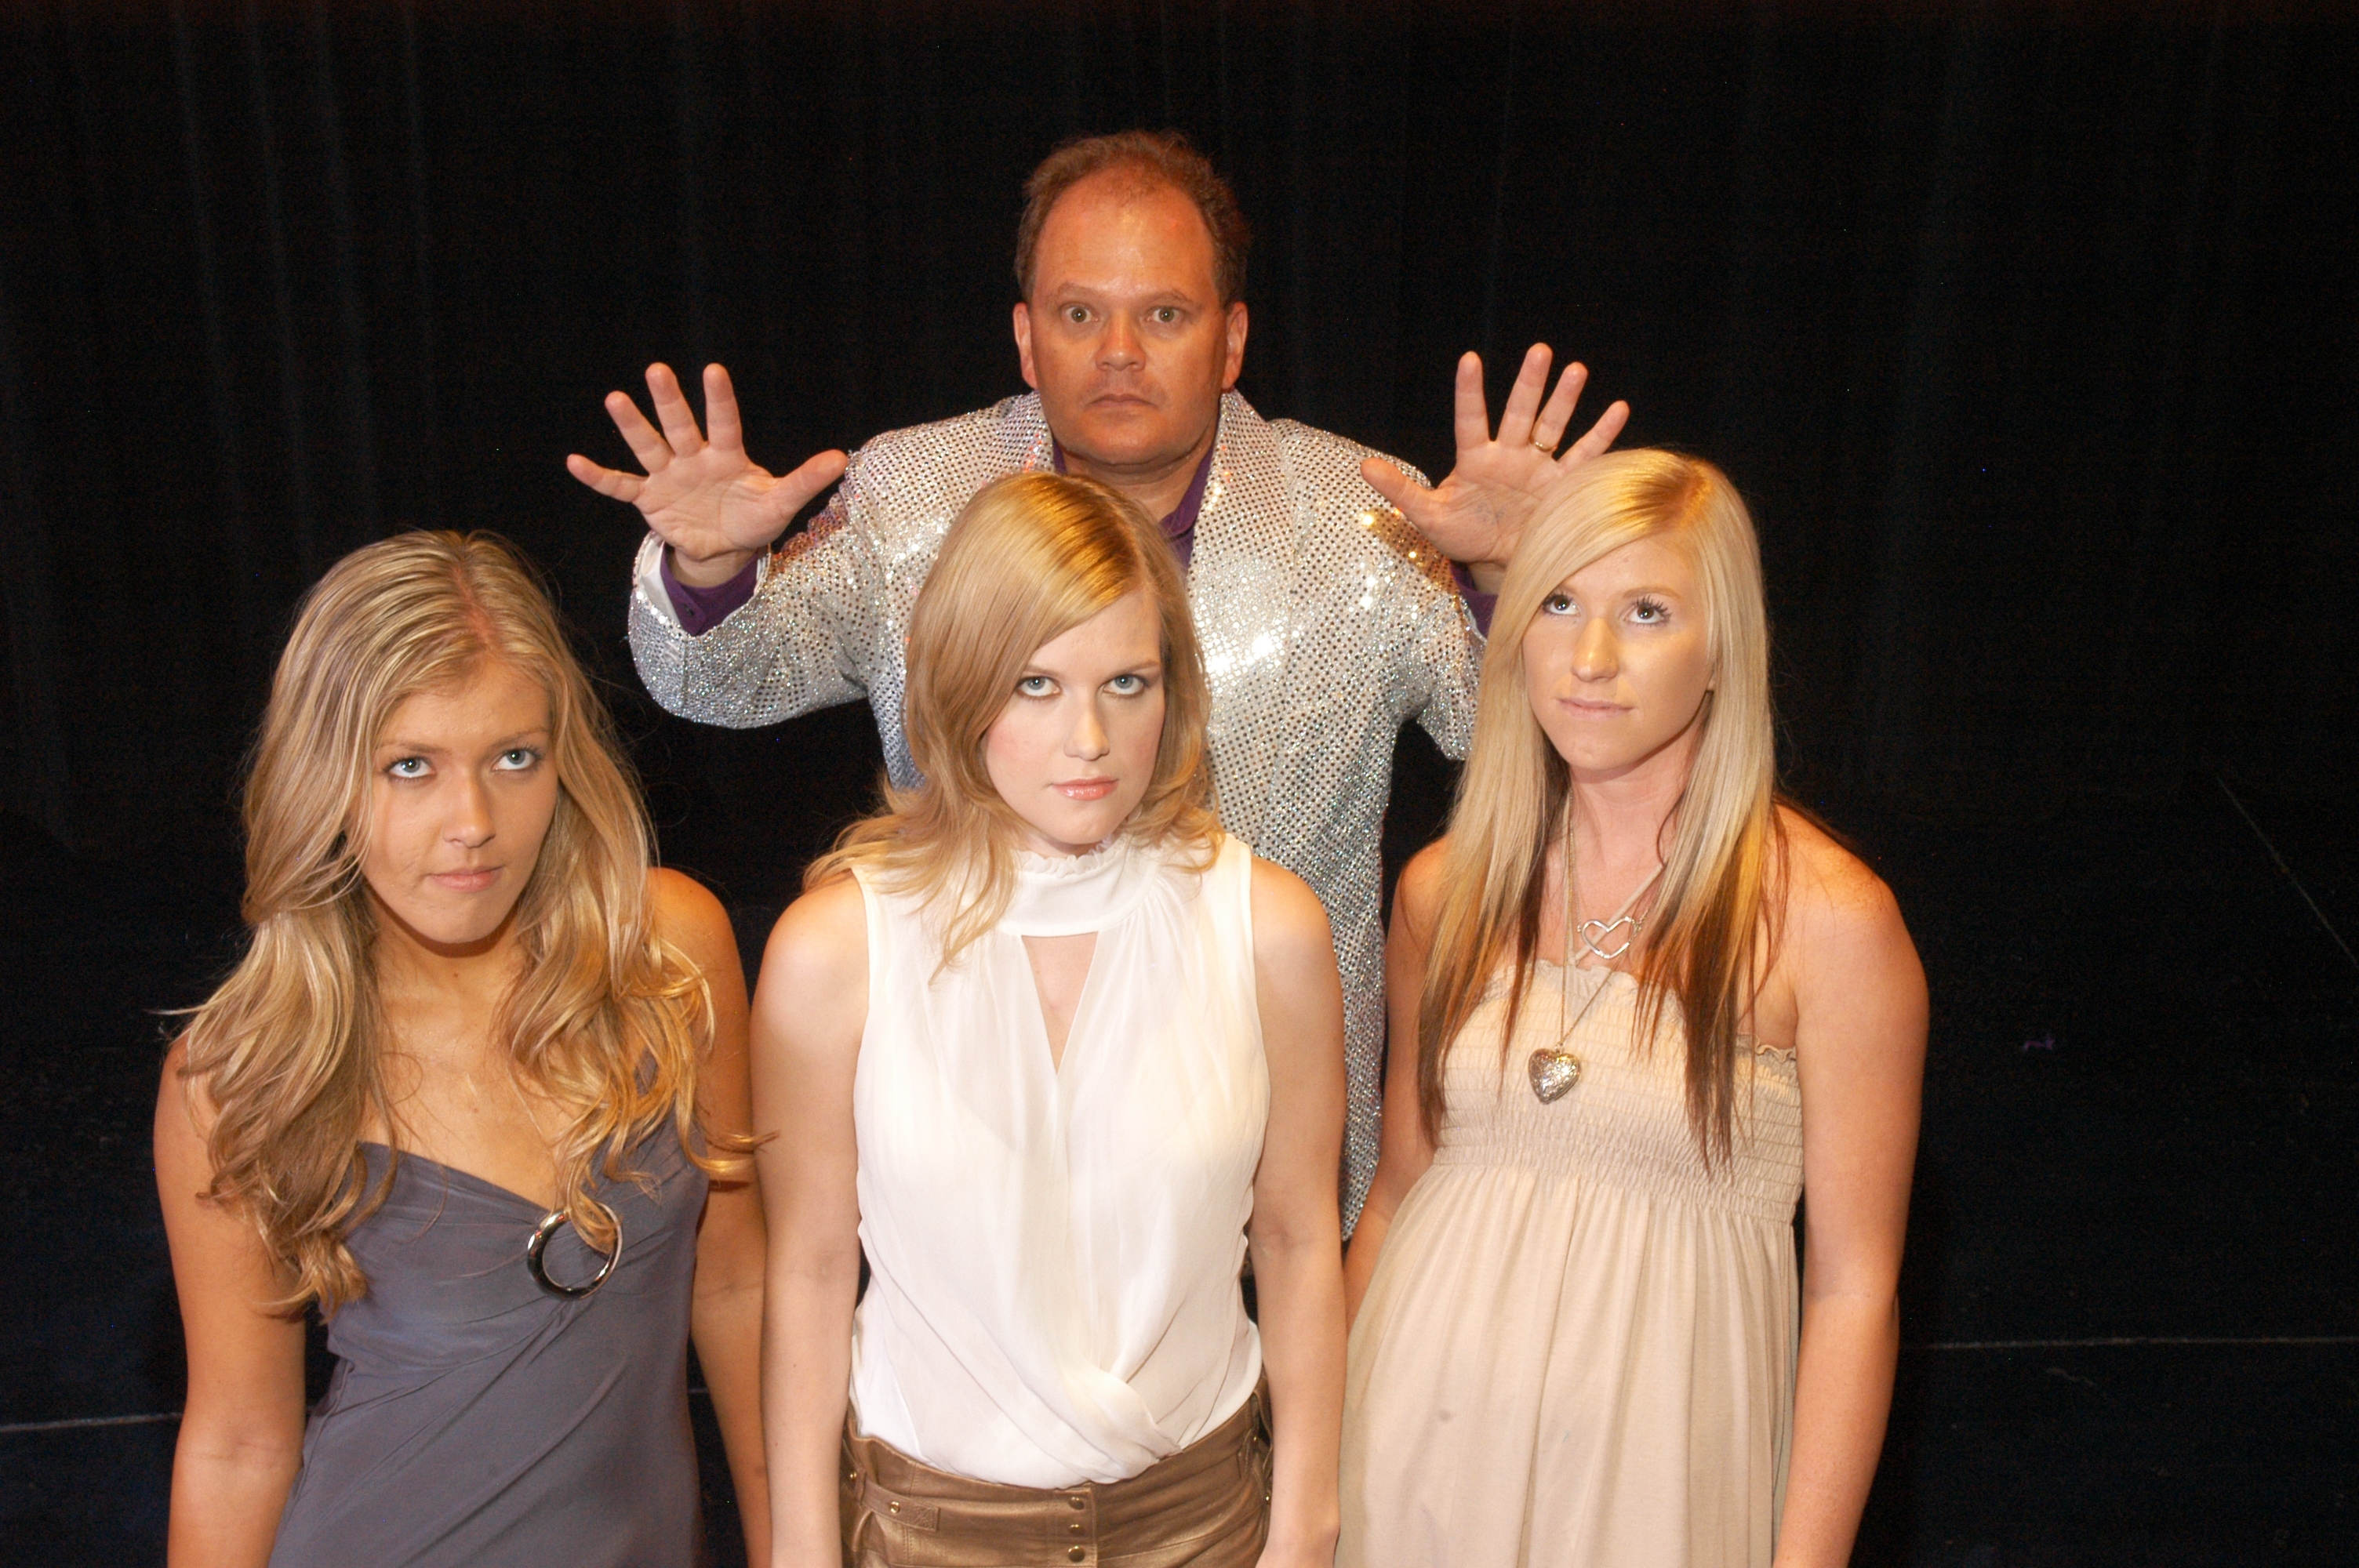 hypnosis show three hypnotized girls and hypnotist chris cady